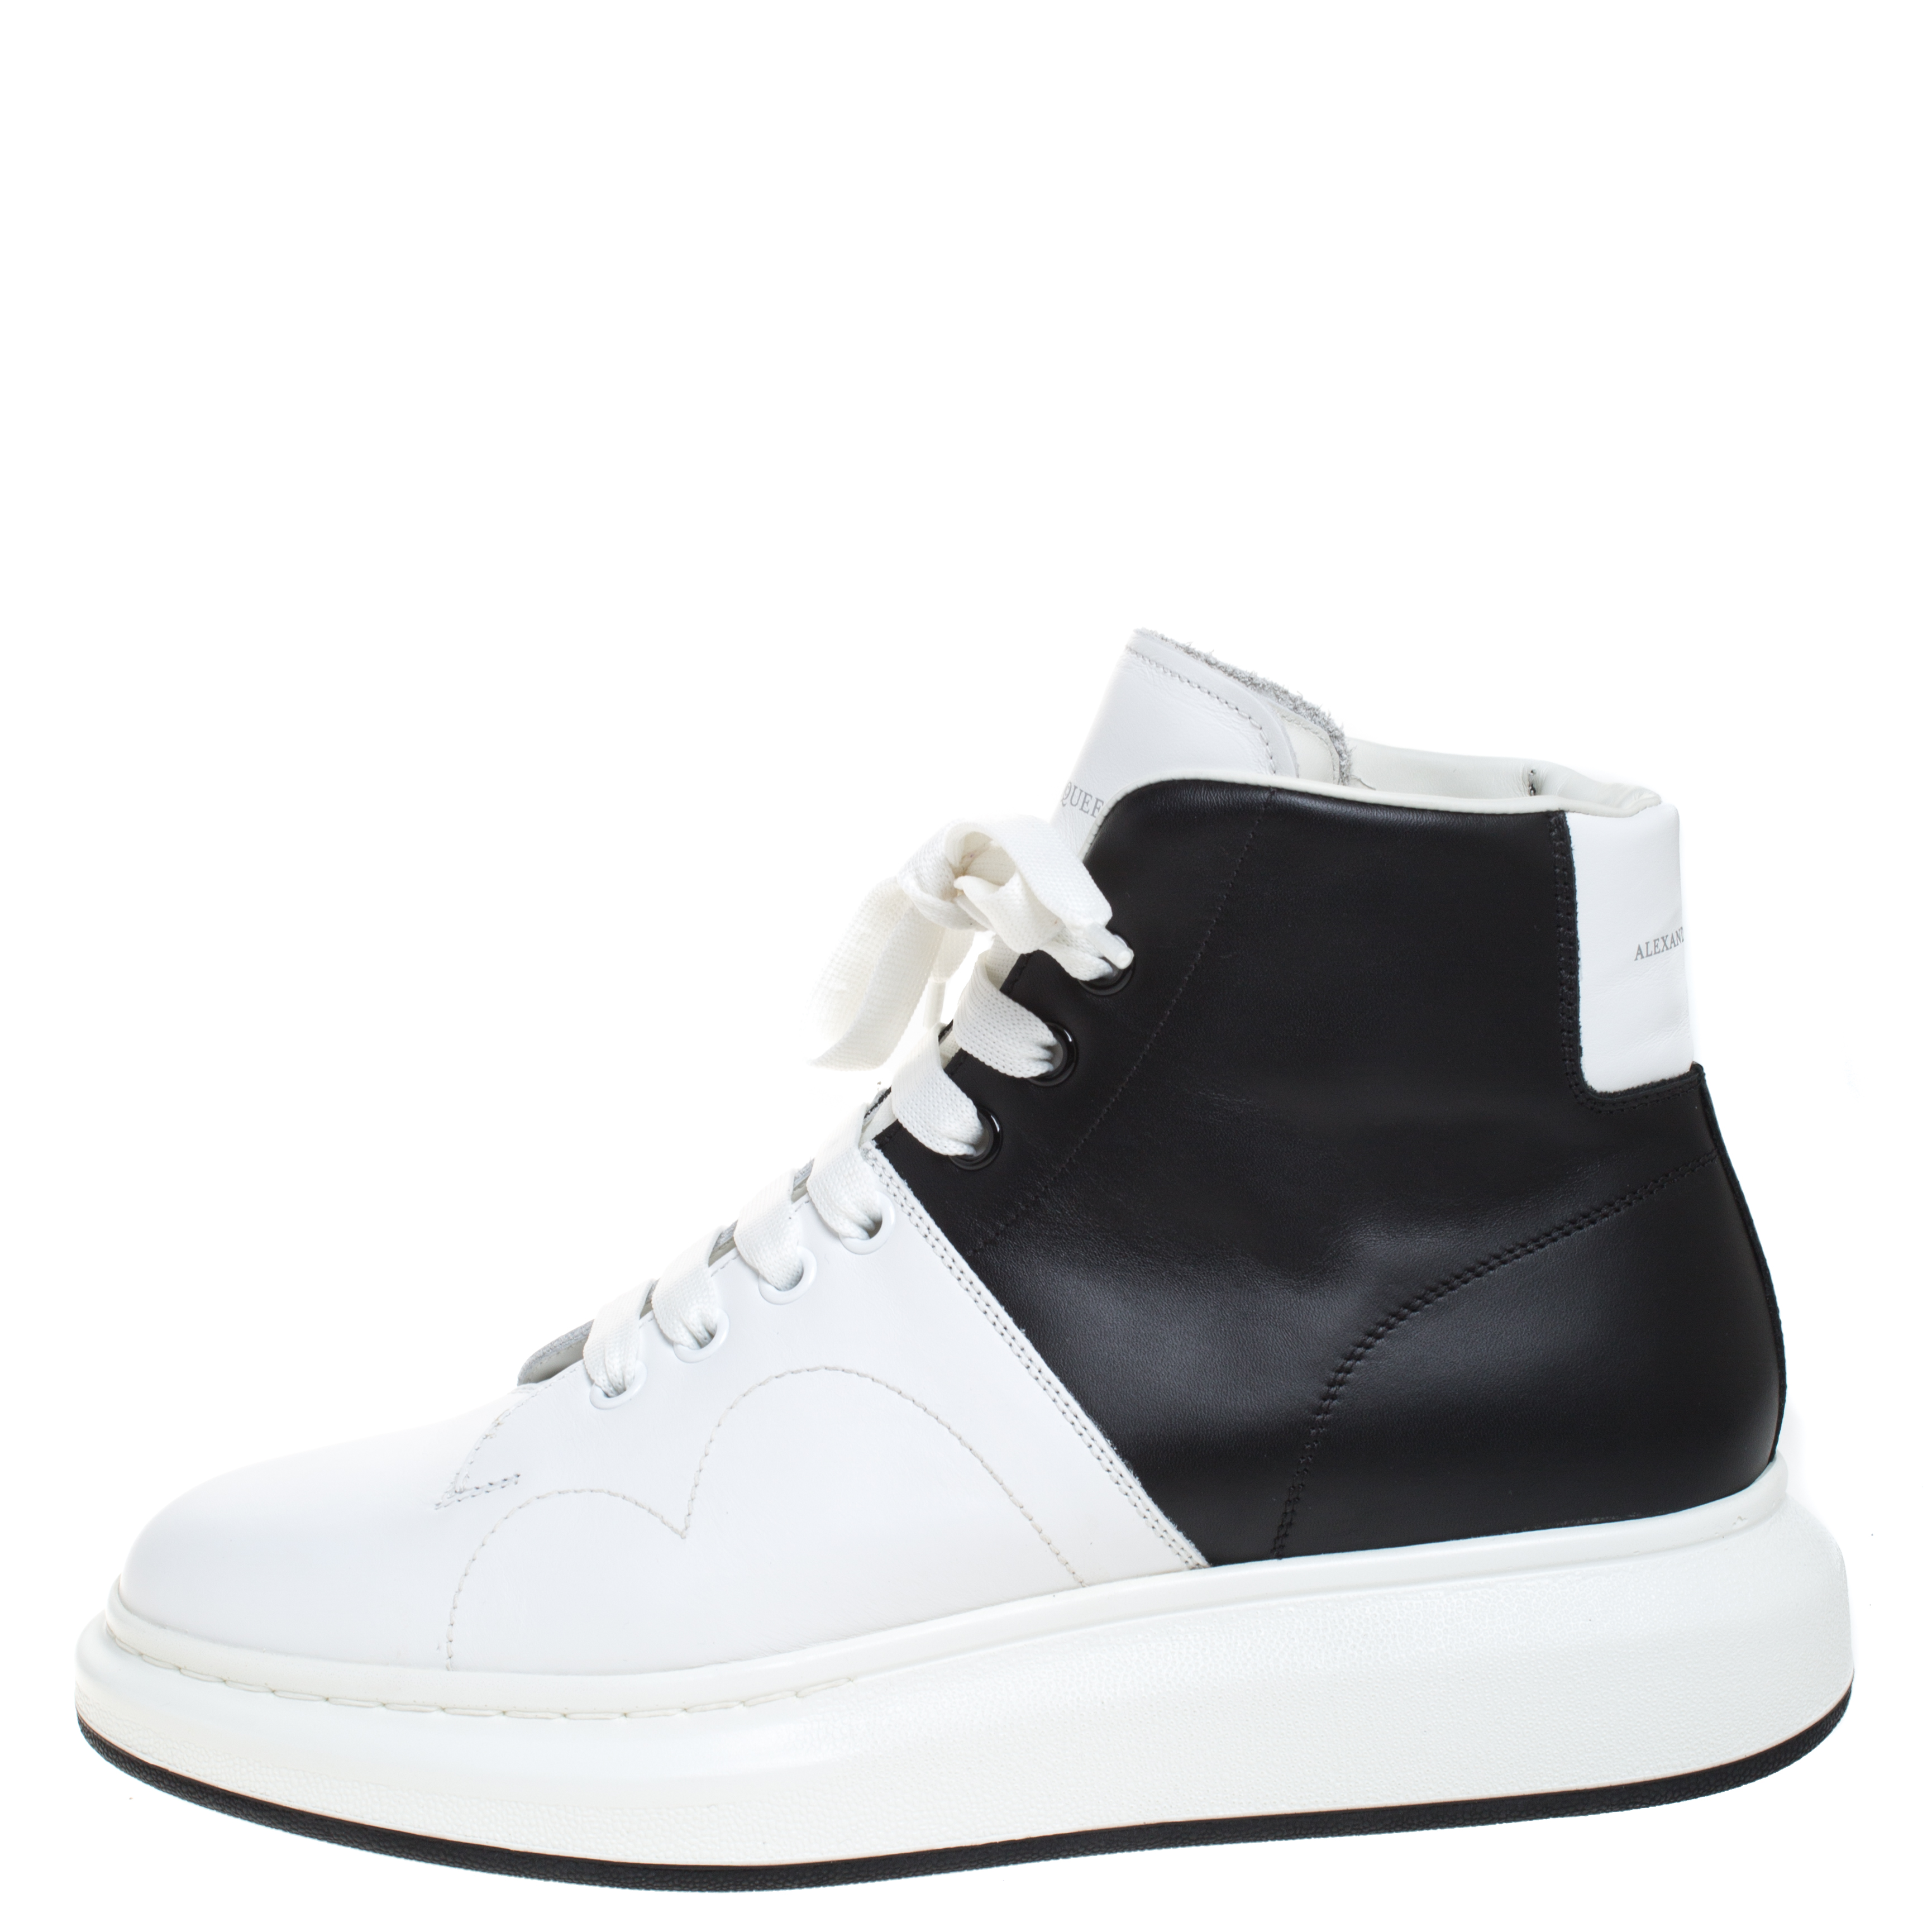 Alexander McQueen White/Black Leather Lace Up High Top Sneakers Size